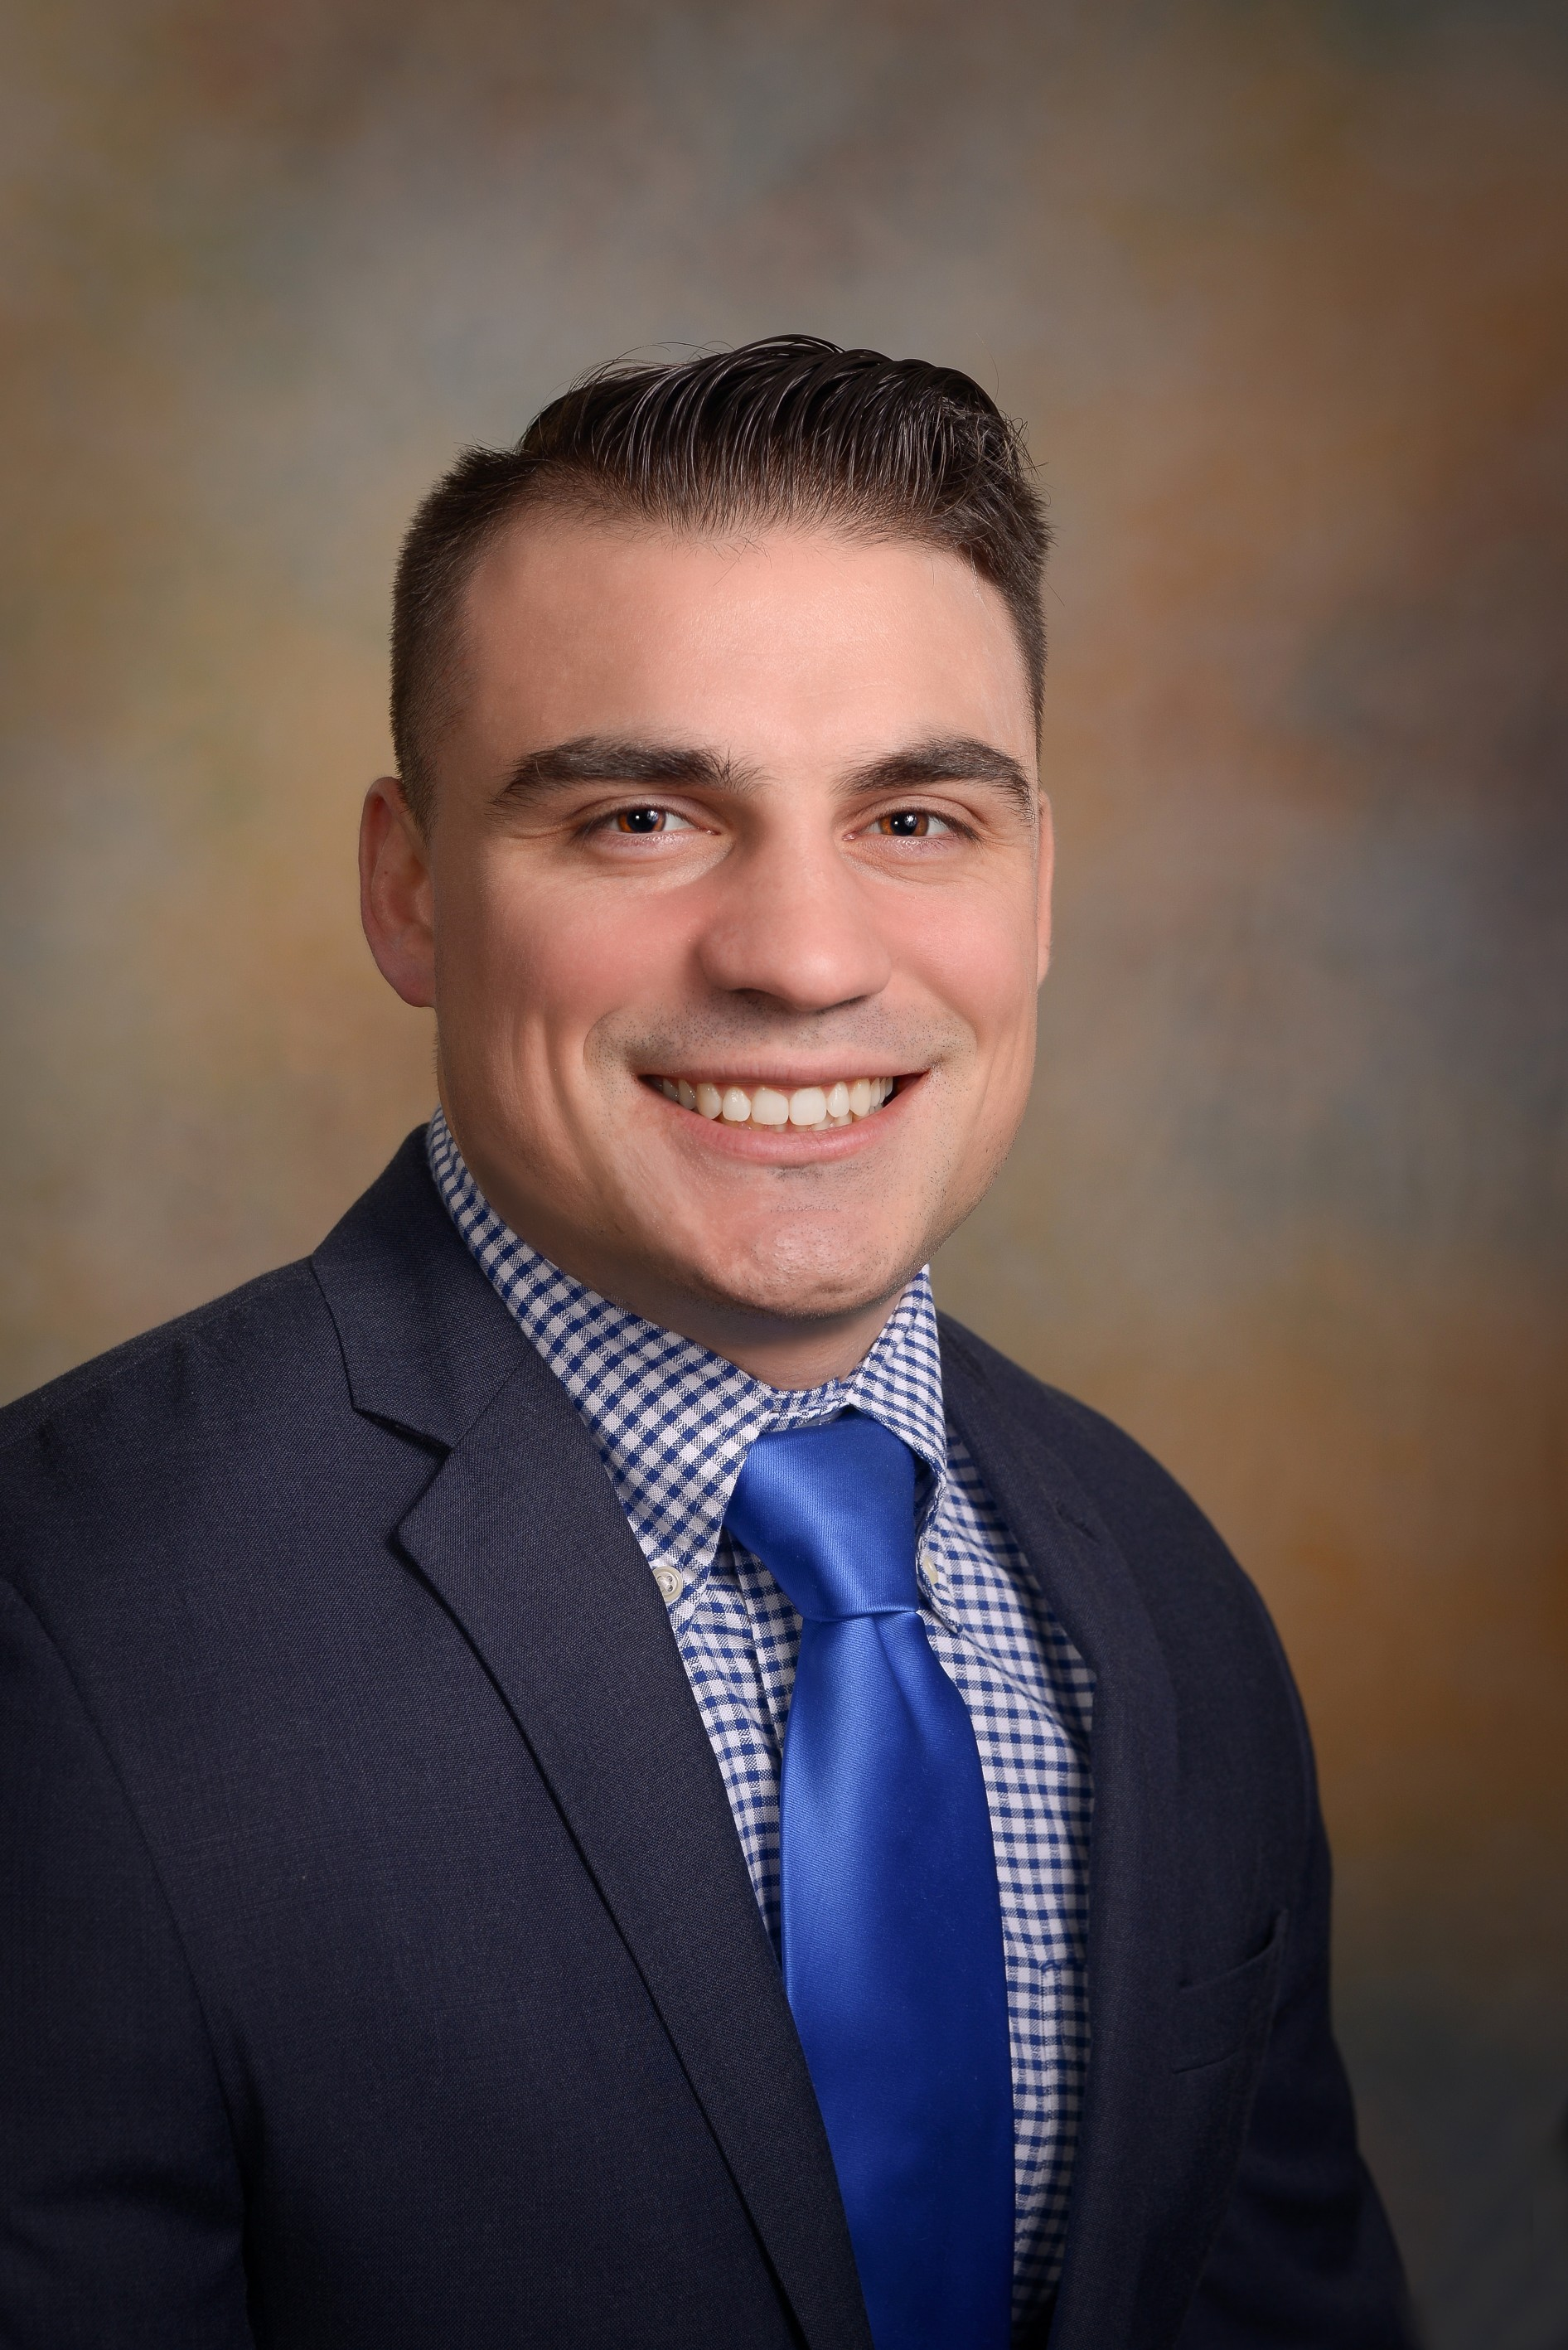 Aleksander Soriano Promoted to Account Manager at RT Specialty